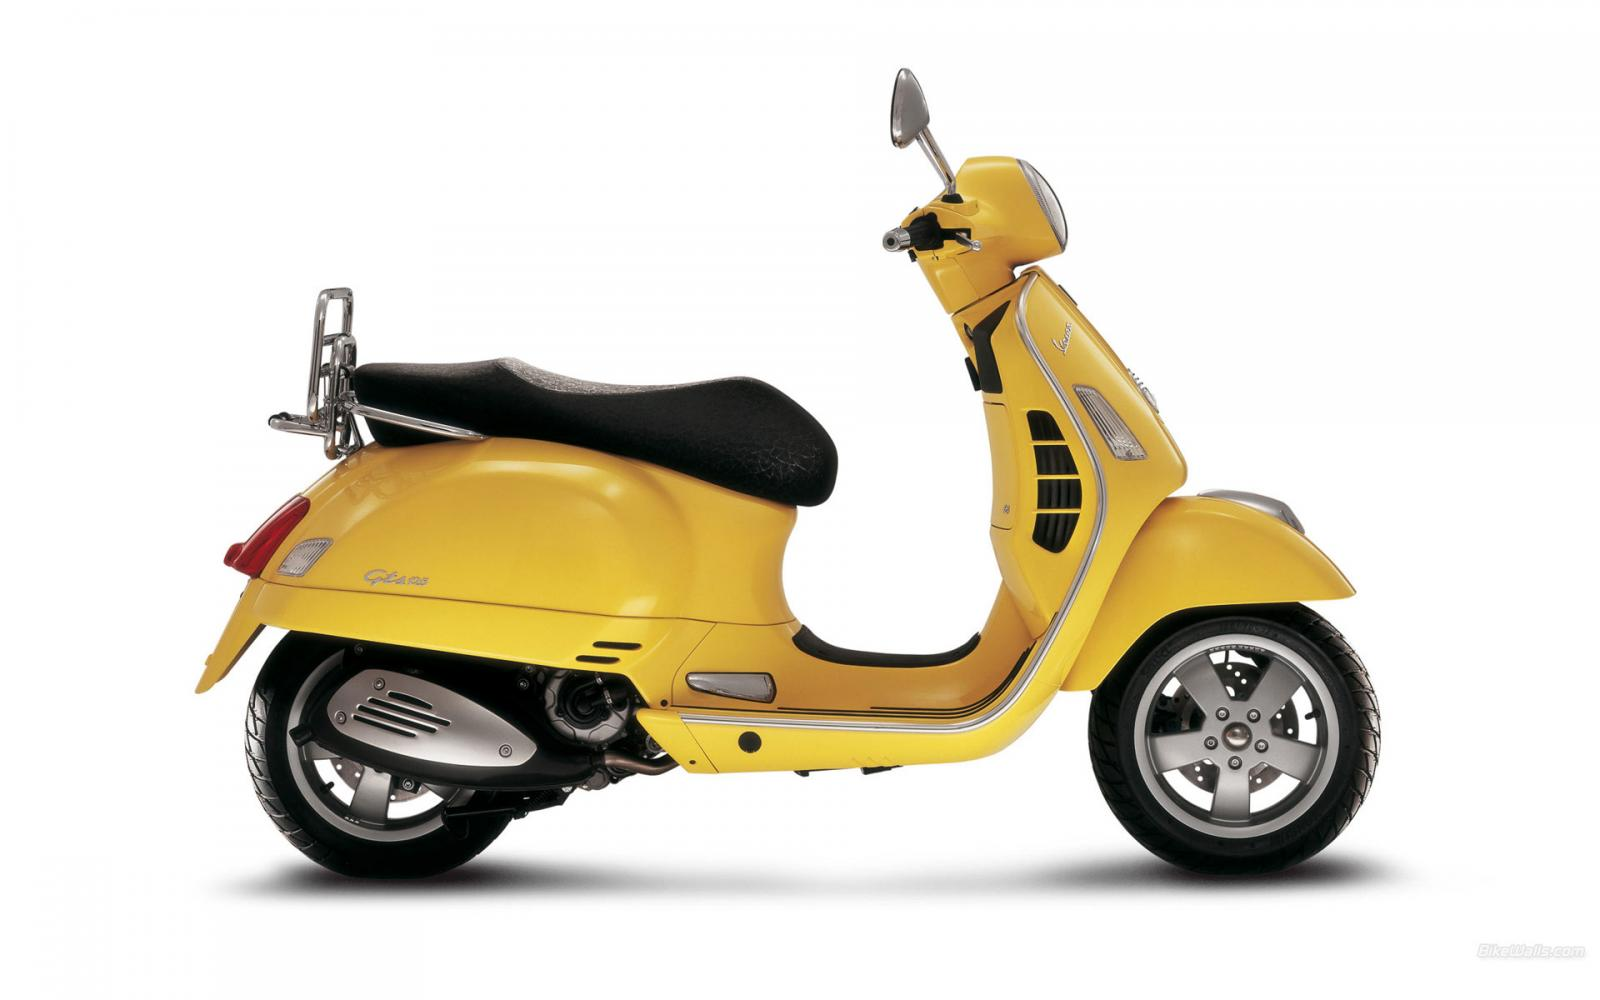 2008 vespa gts 125 moto zombdrive com. Black Bedroom Furniture Sets. Home Design Ideas